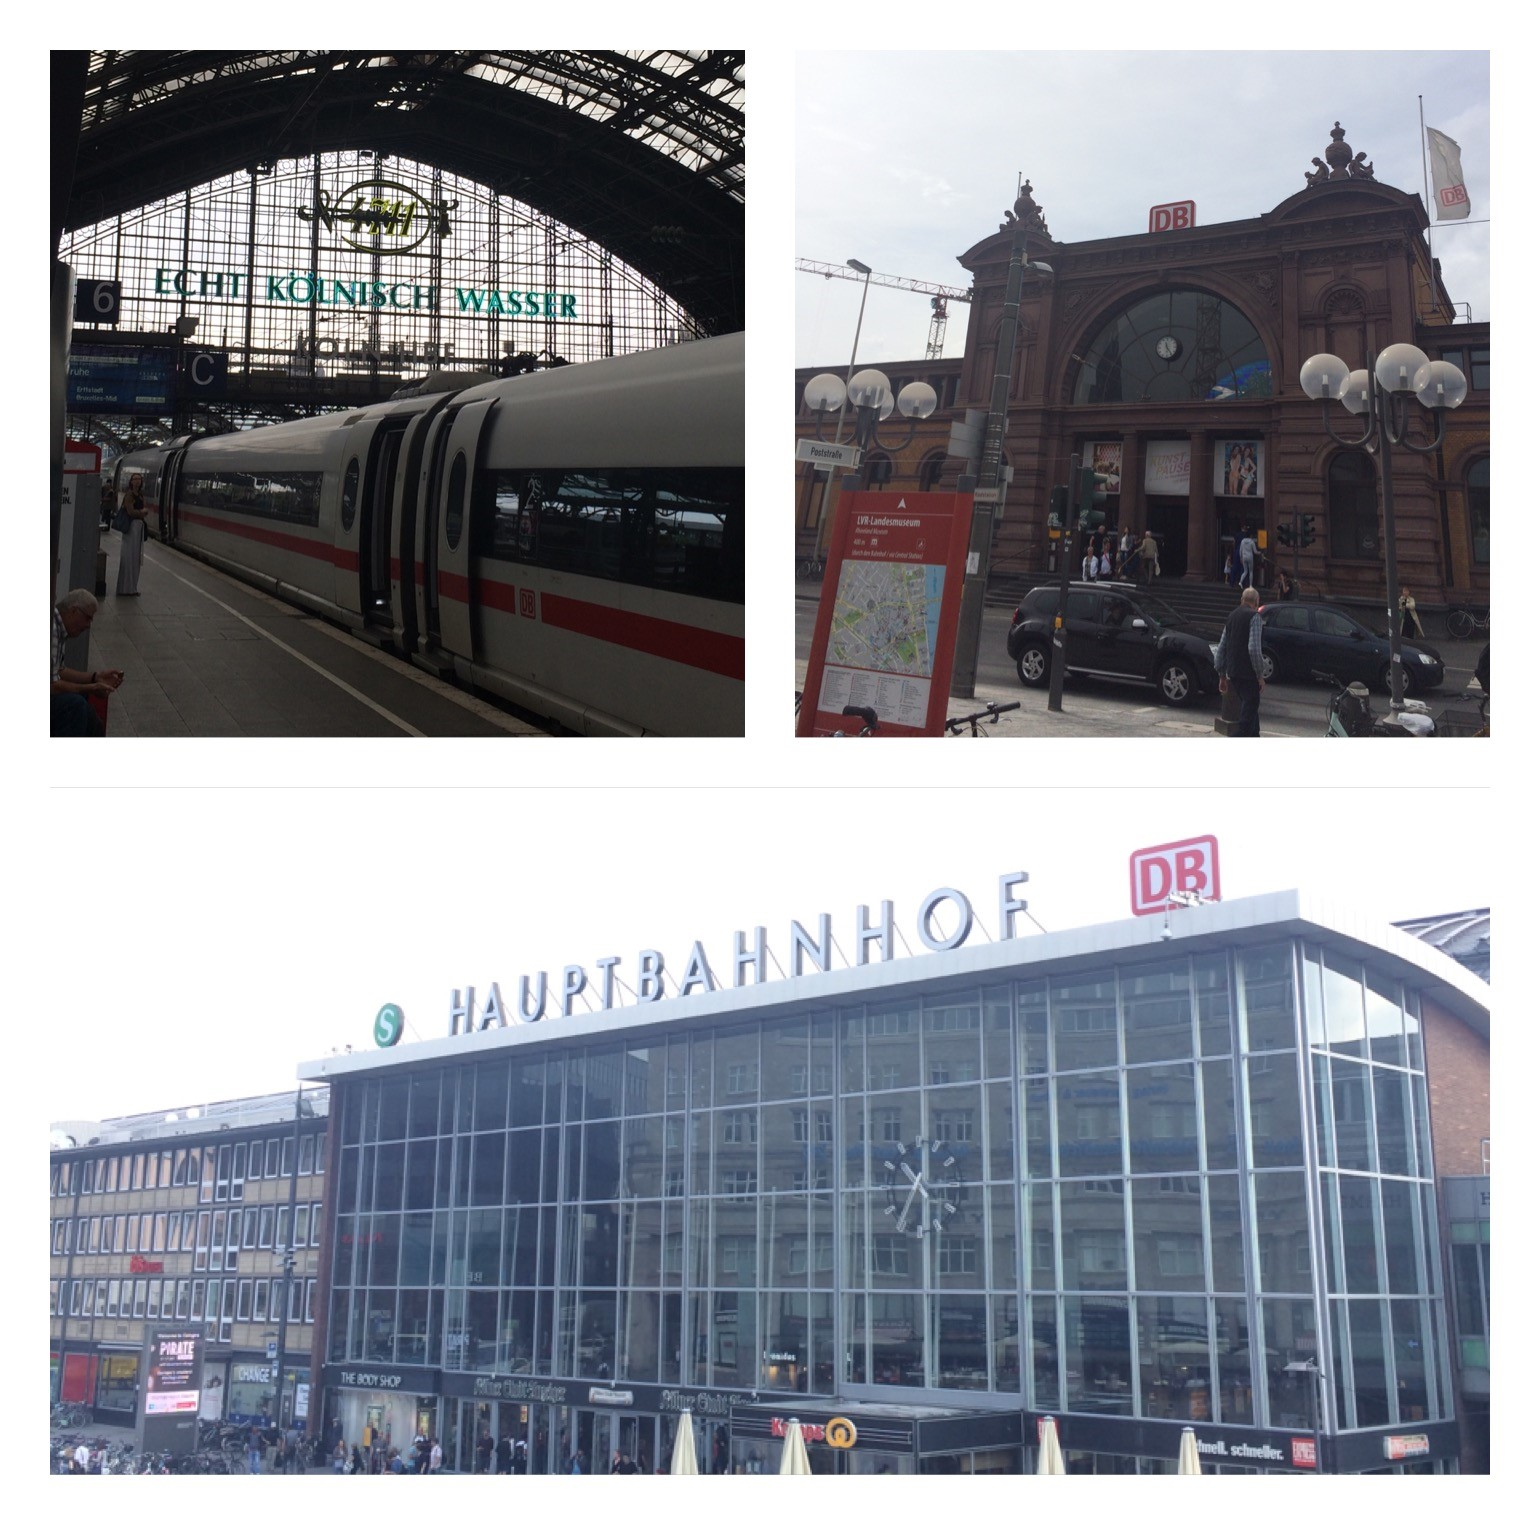 Andy - German stations